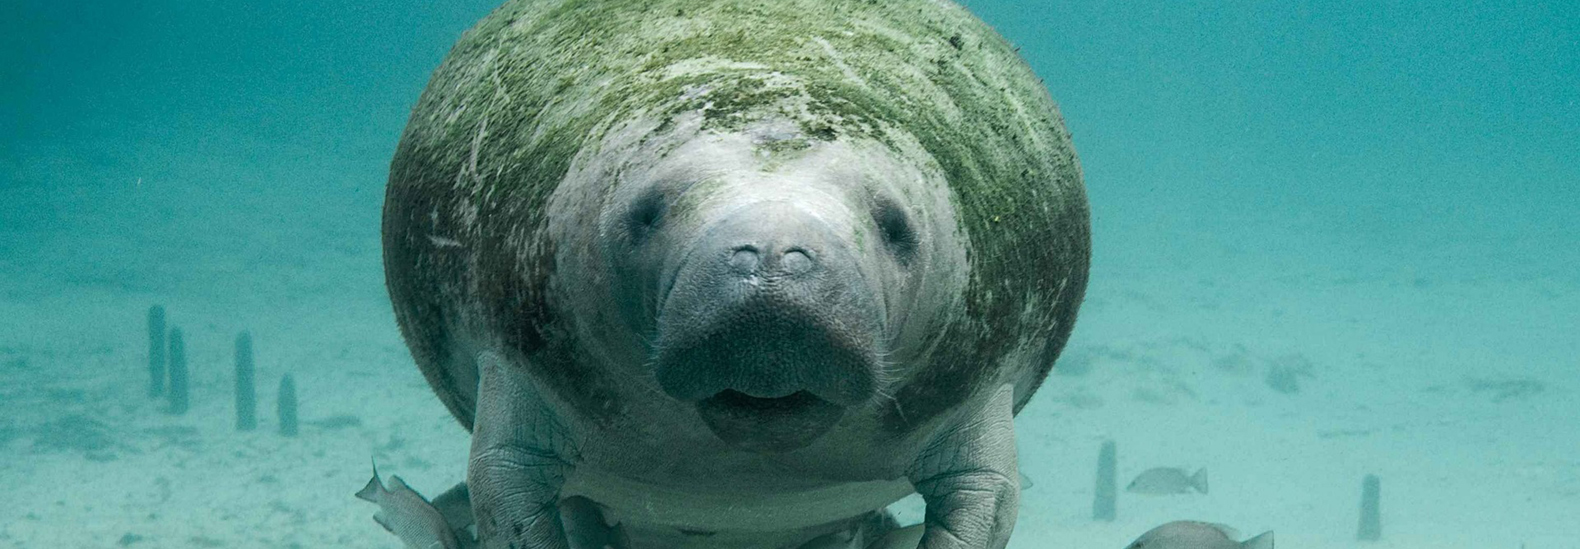 Effects of COVID-19 lead to increased deaths of Florida manatees